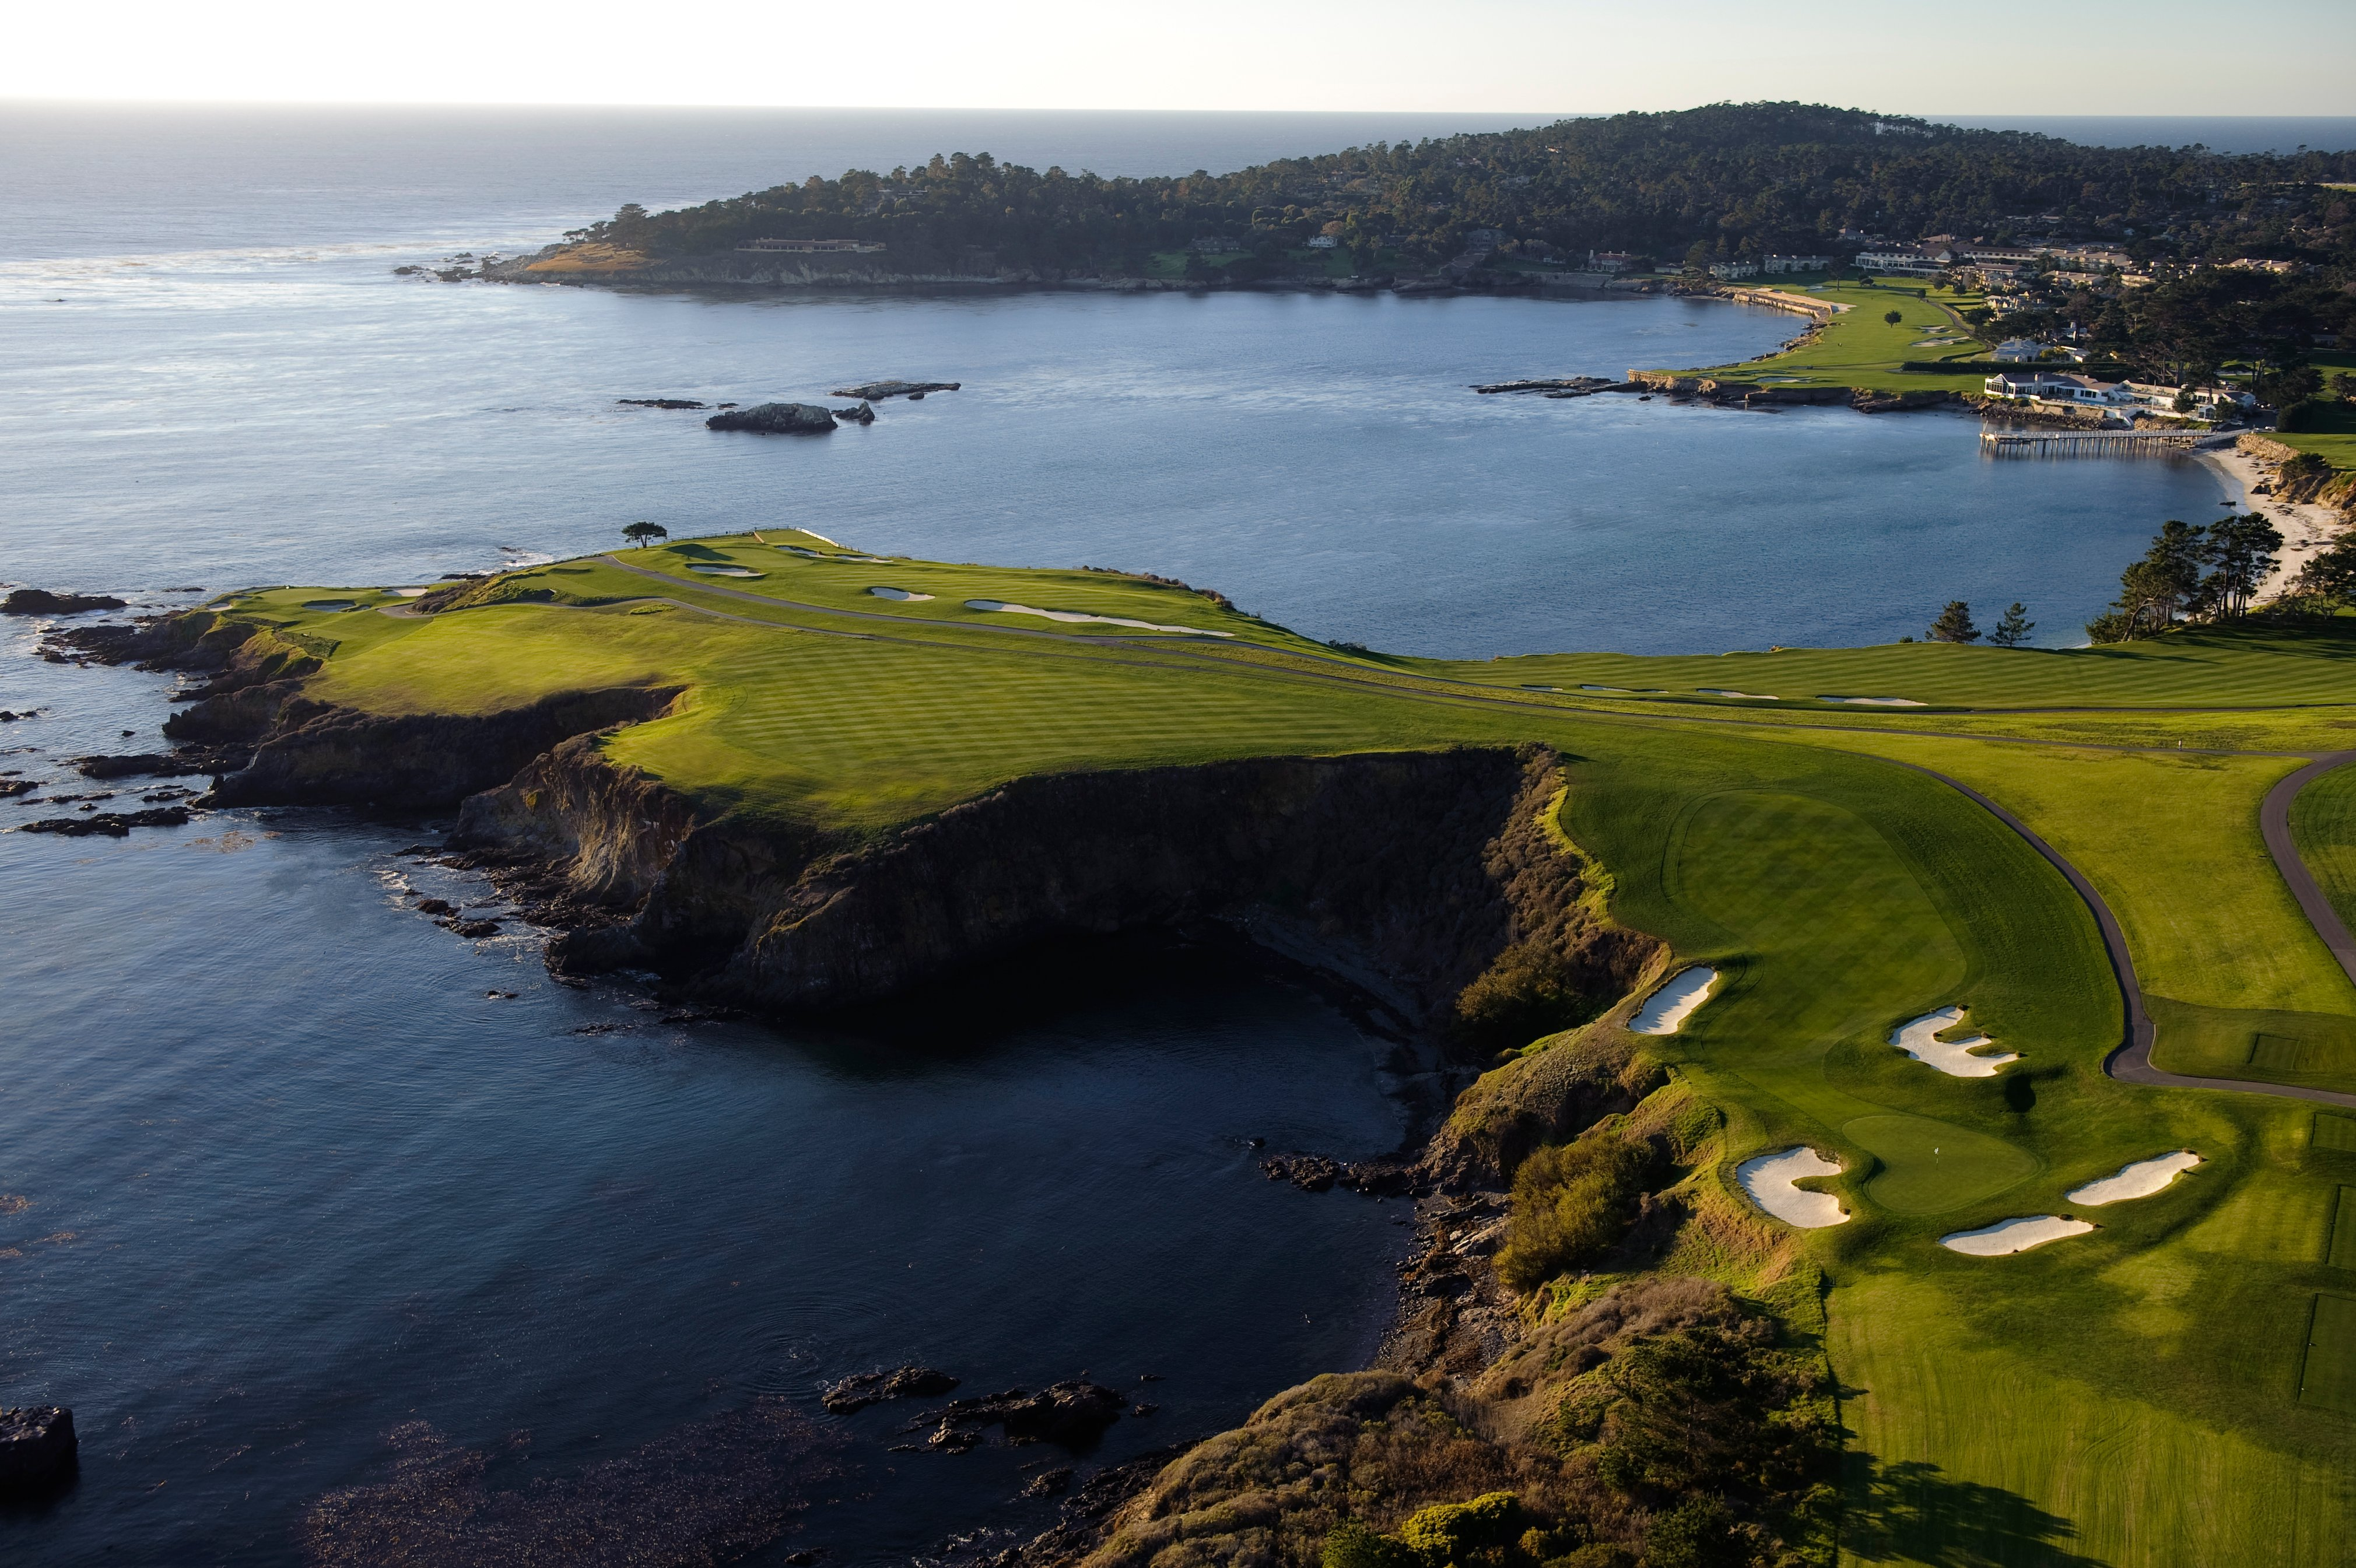 Aerial of eighth hole at Pebble Beach